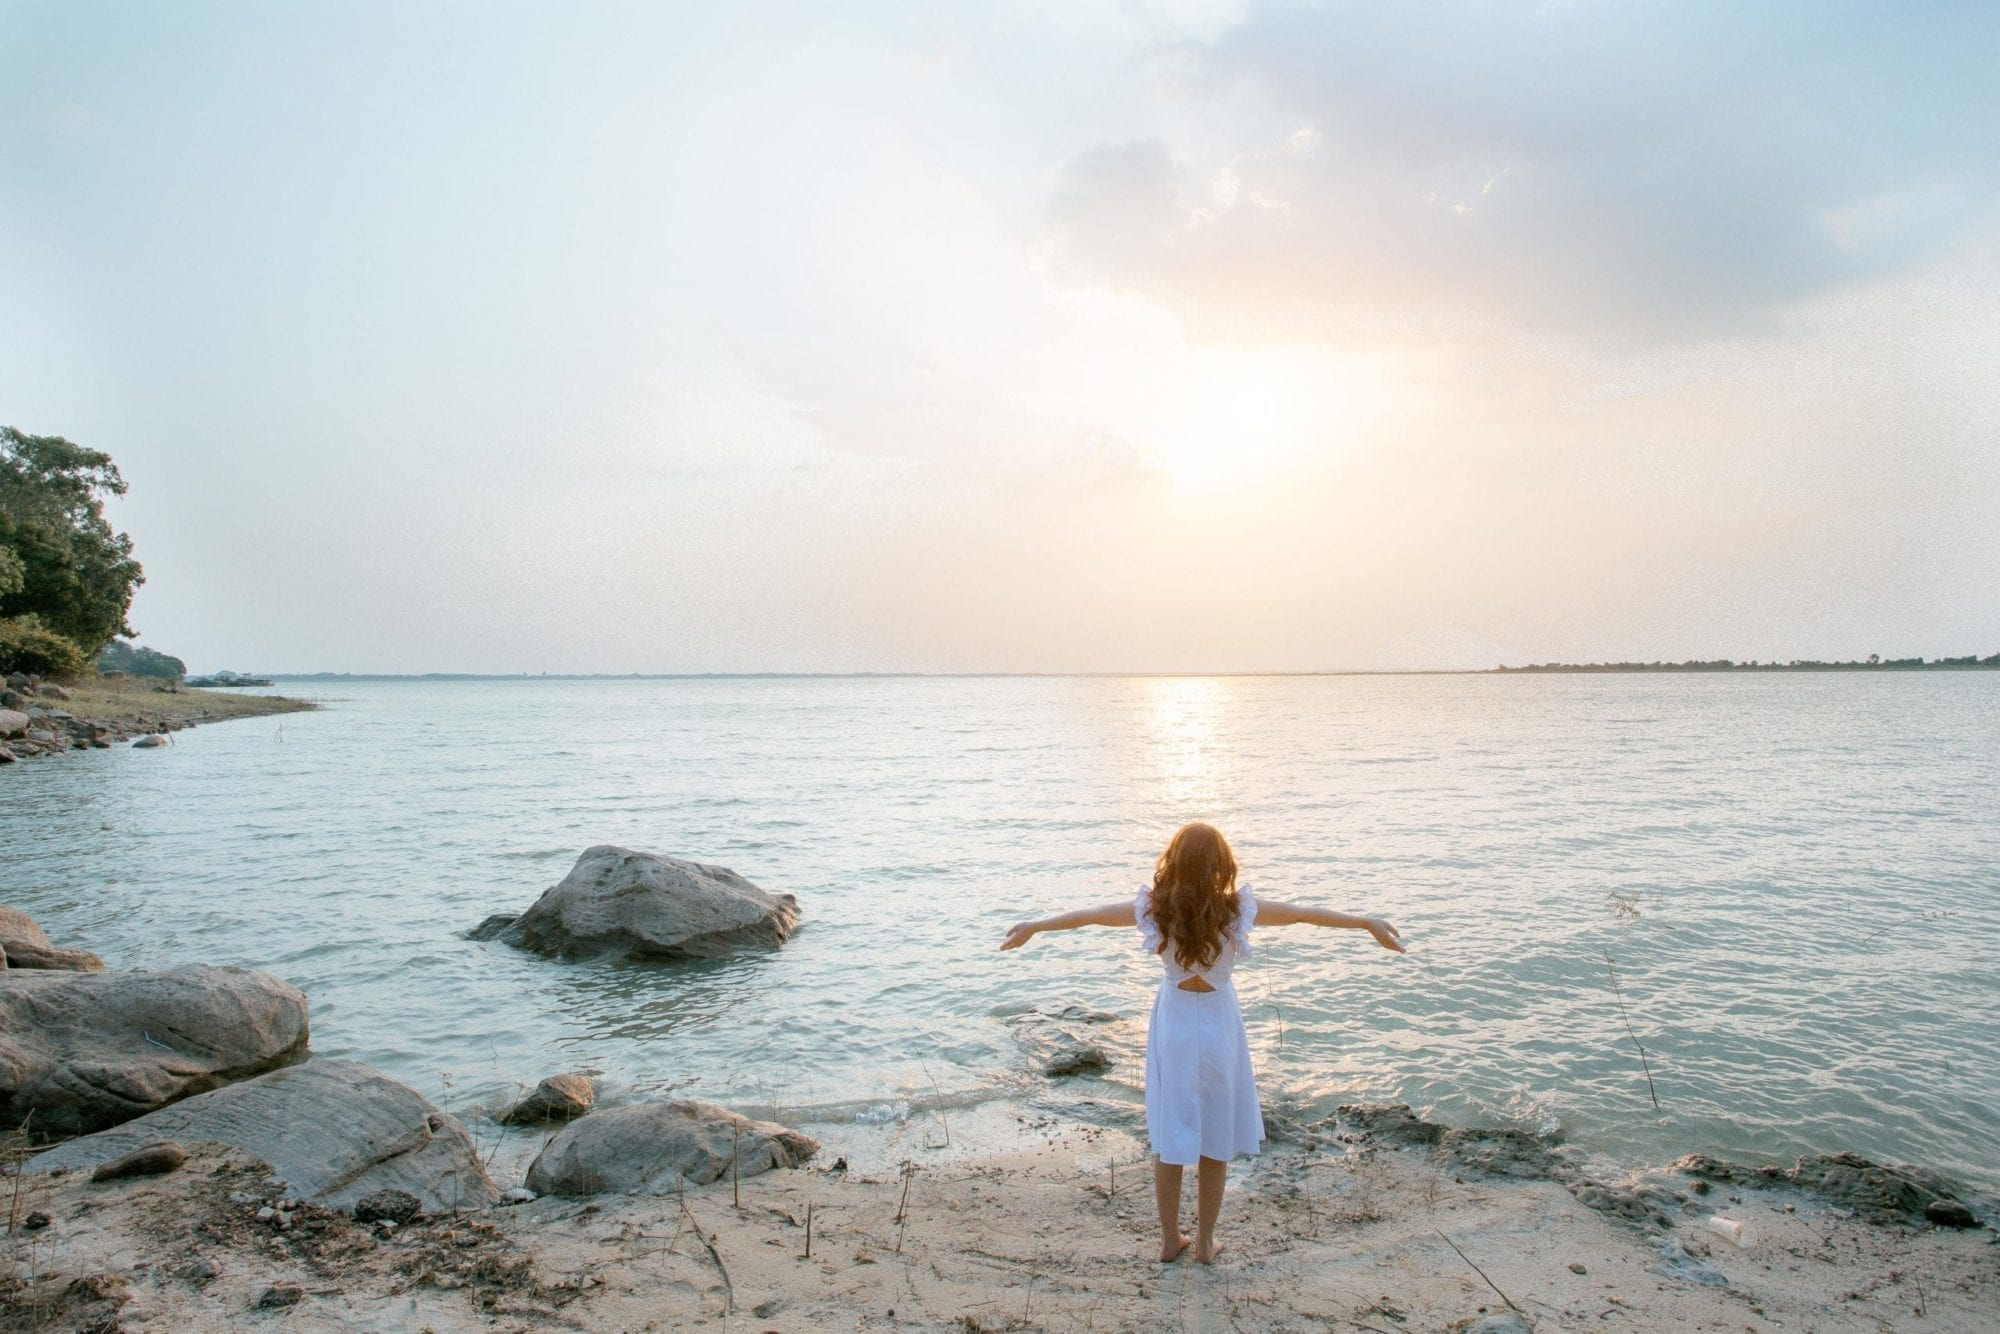 Woman with outstretched arms, facing the sun on the coast, having found chronic pain relief in neural therapy